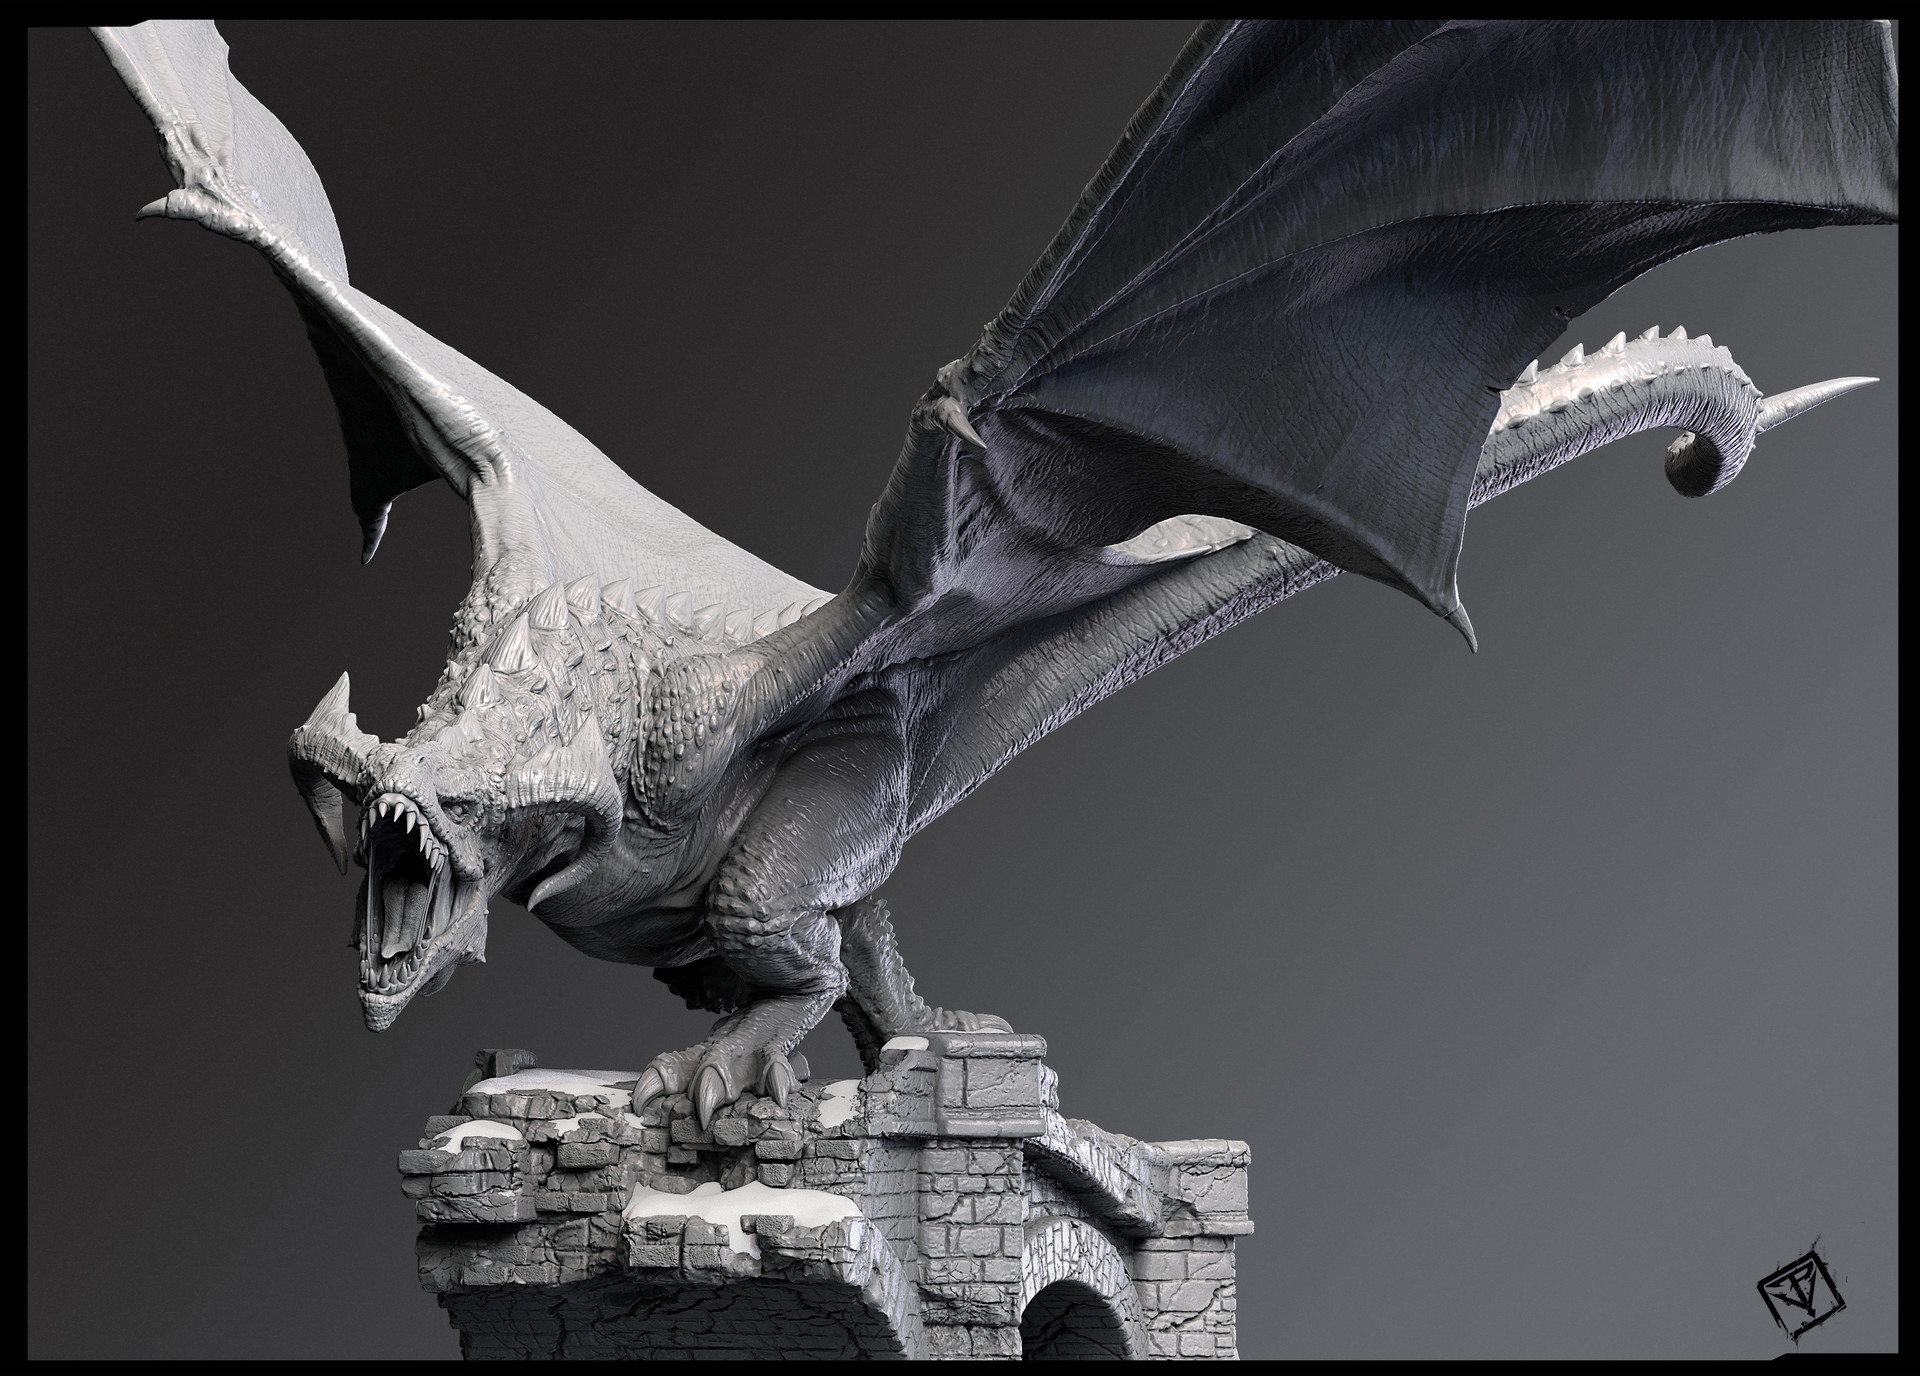 Pablo vicentin new dragon scene 06